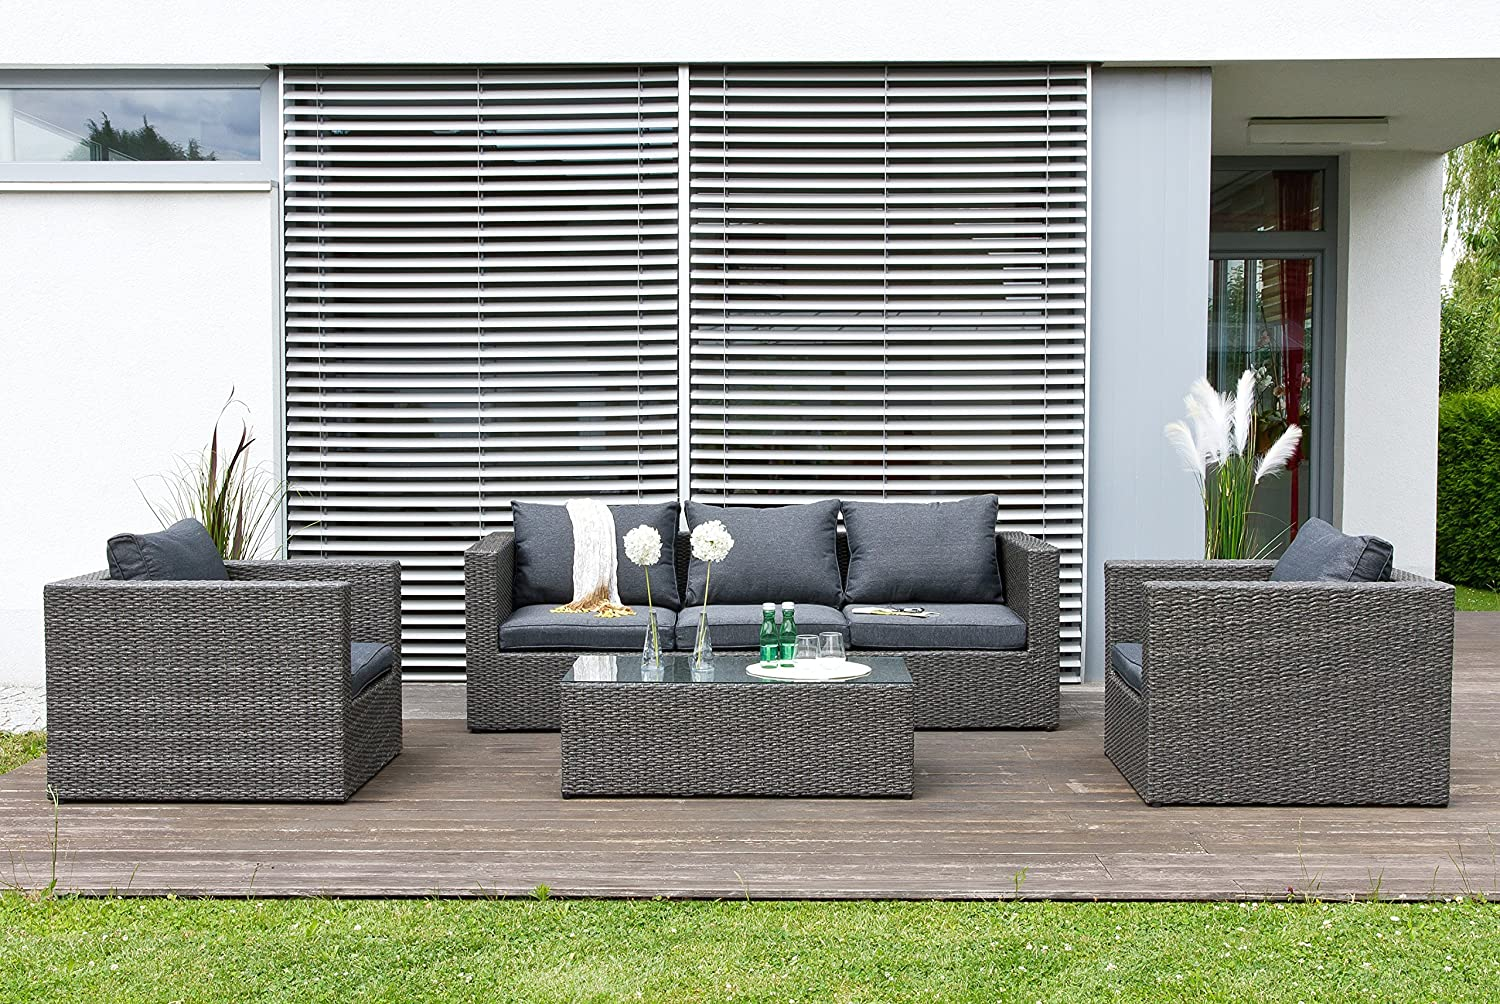 rattan gartengarnitur lounge nomade garten sitzgruppe mit tisch g nstig kaufen. Black Bedroom Furniture Sets. Home Design Ideas